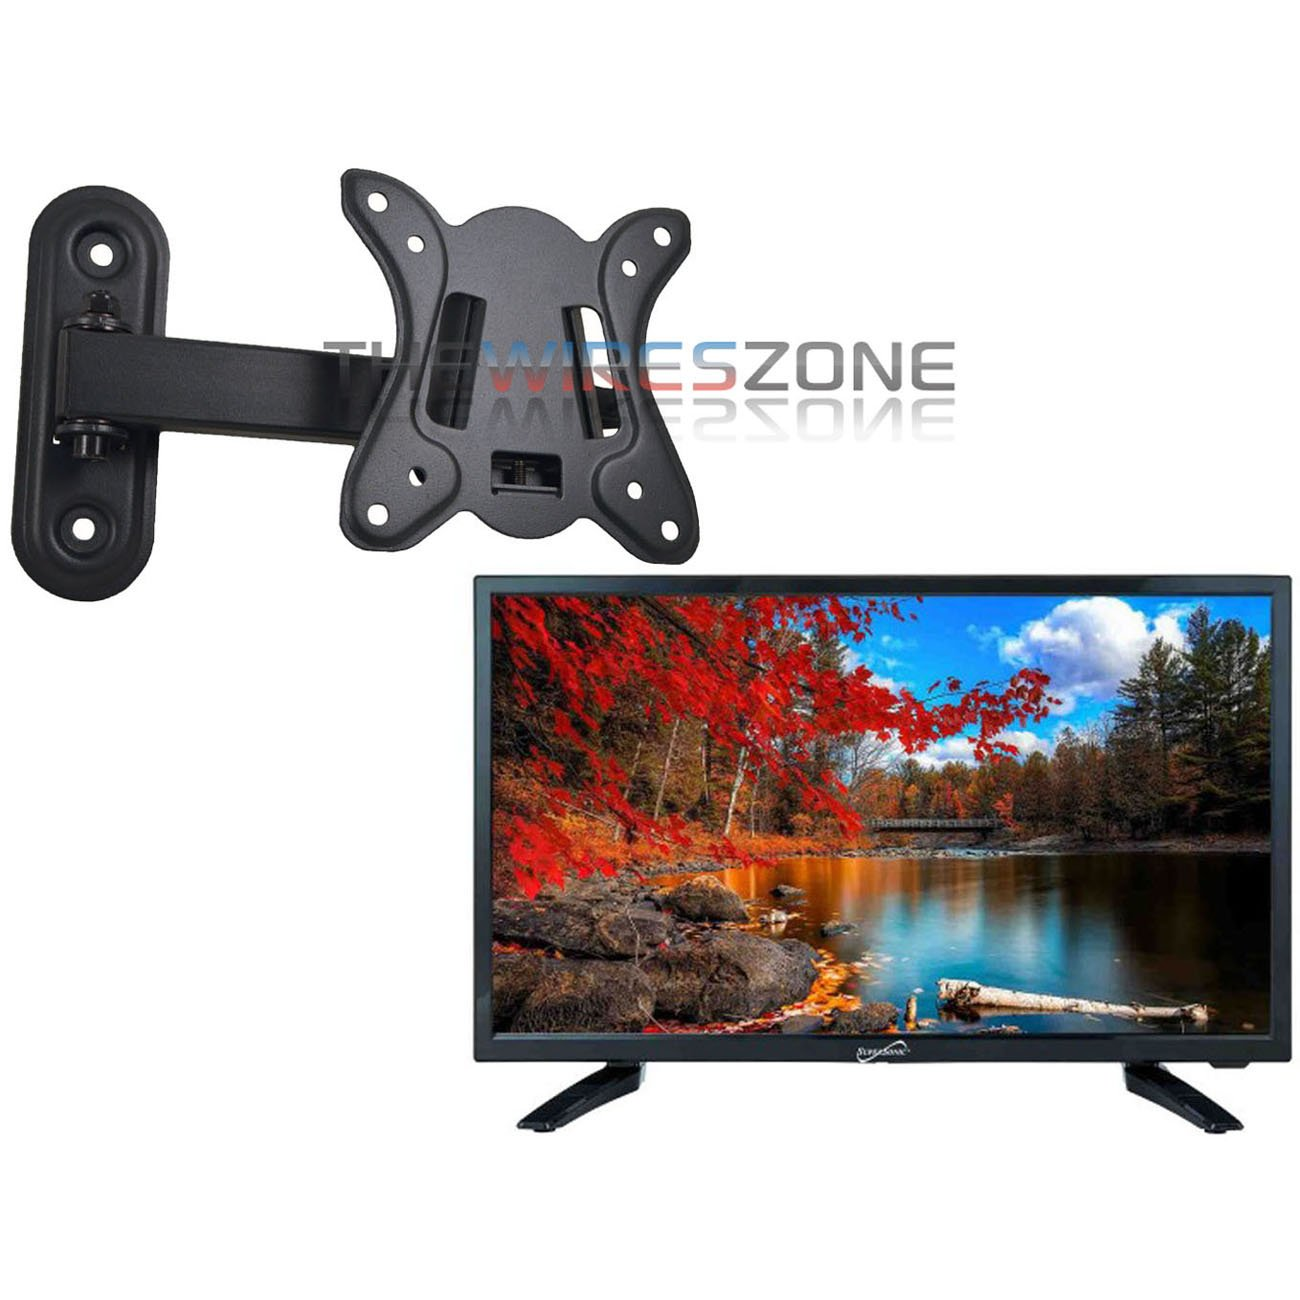 Supersonic SC-2411 24'' LED 1080p 12 Volt AC/DC HDMI Widescreen HDTV + Wall Mount by Supersonic